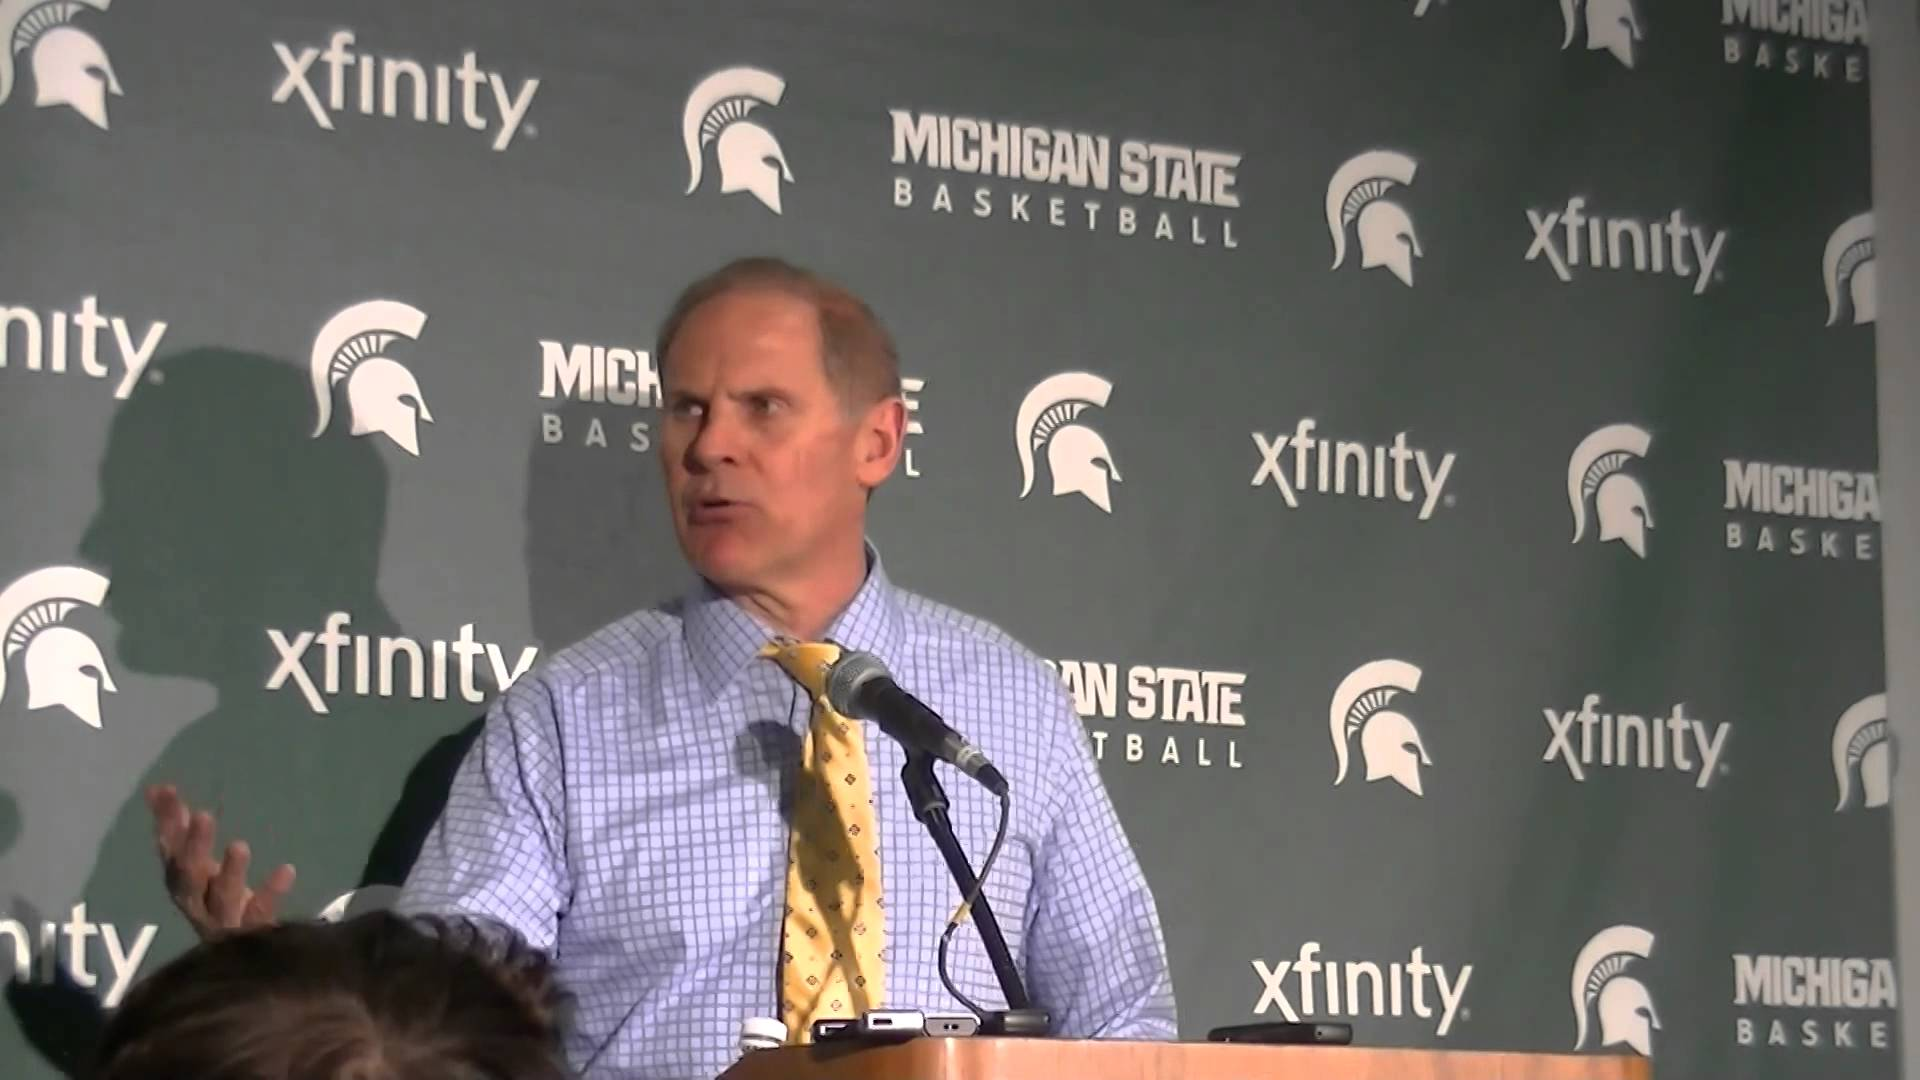 Video & Quotes: John Beilein reacts to win over Michigan State